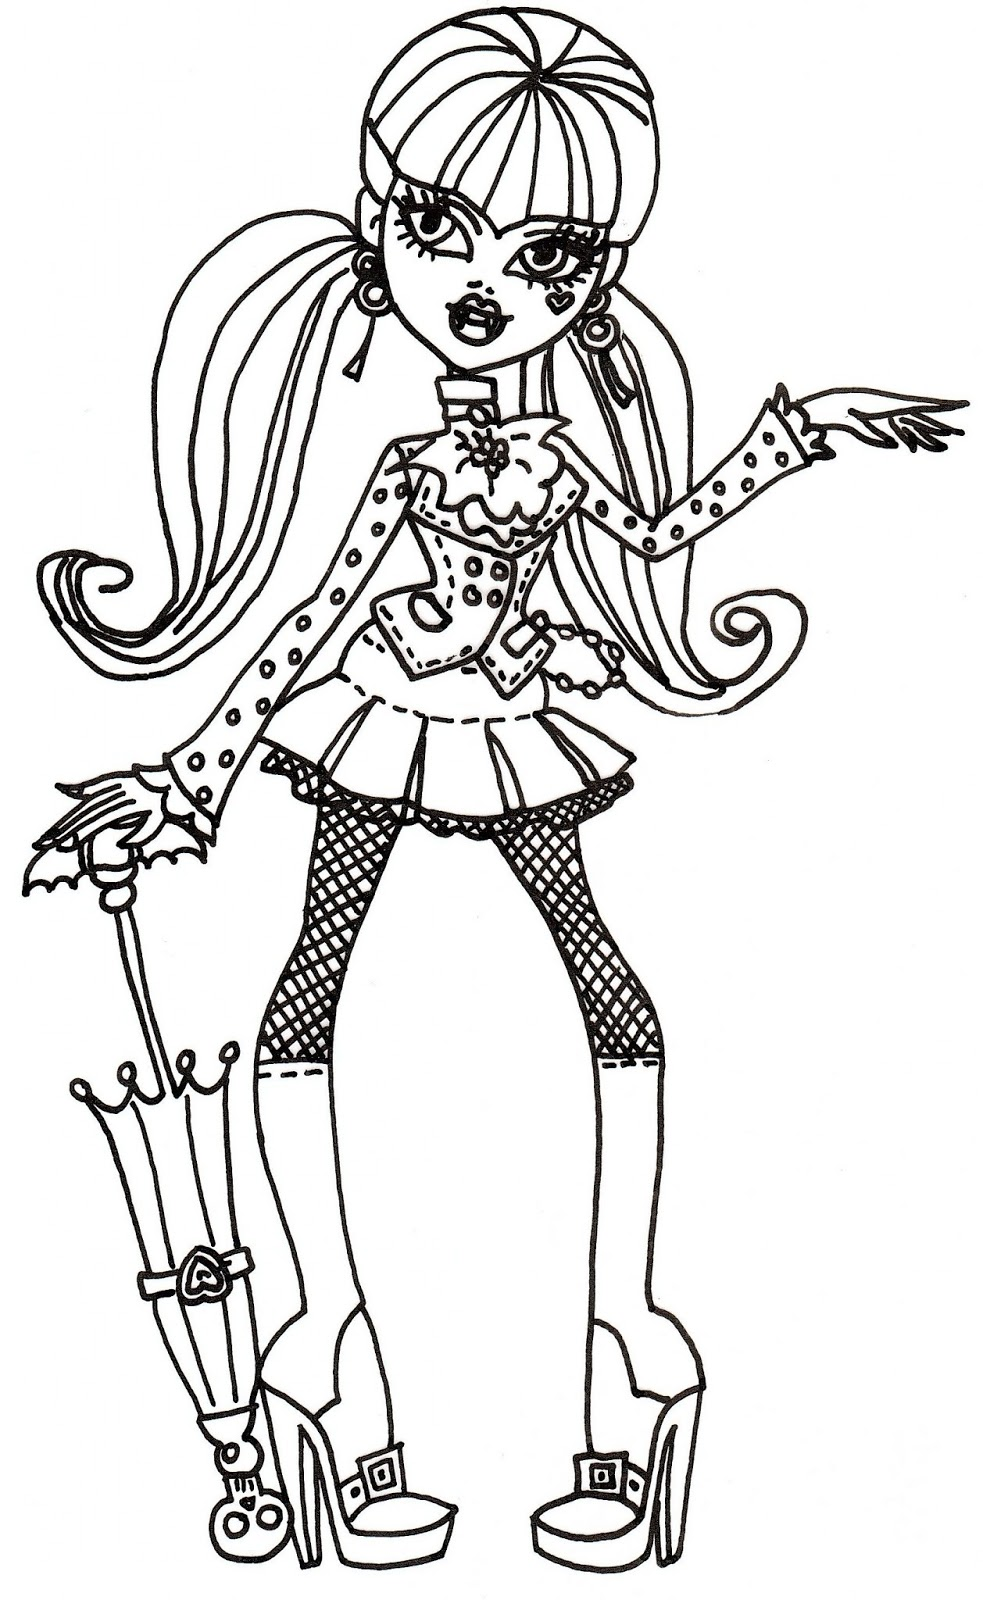 Free coloring pages for june - Free Draculaura Coloring Sheet